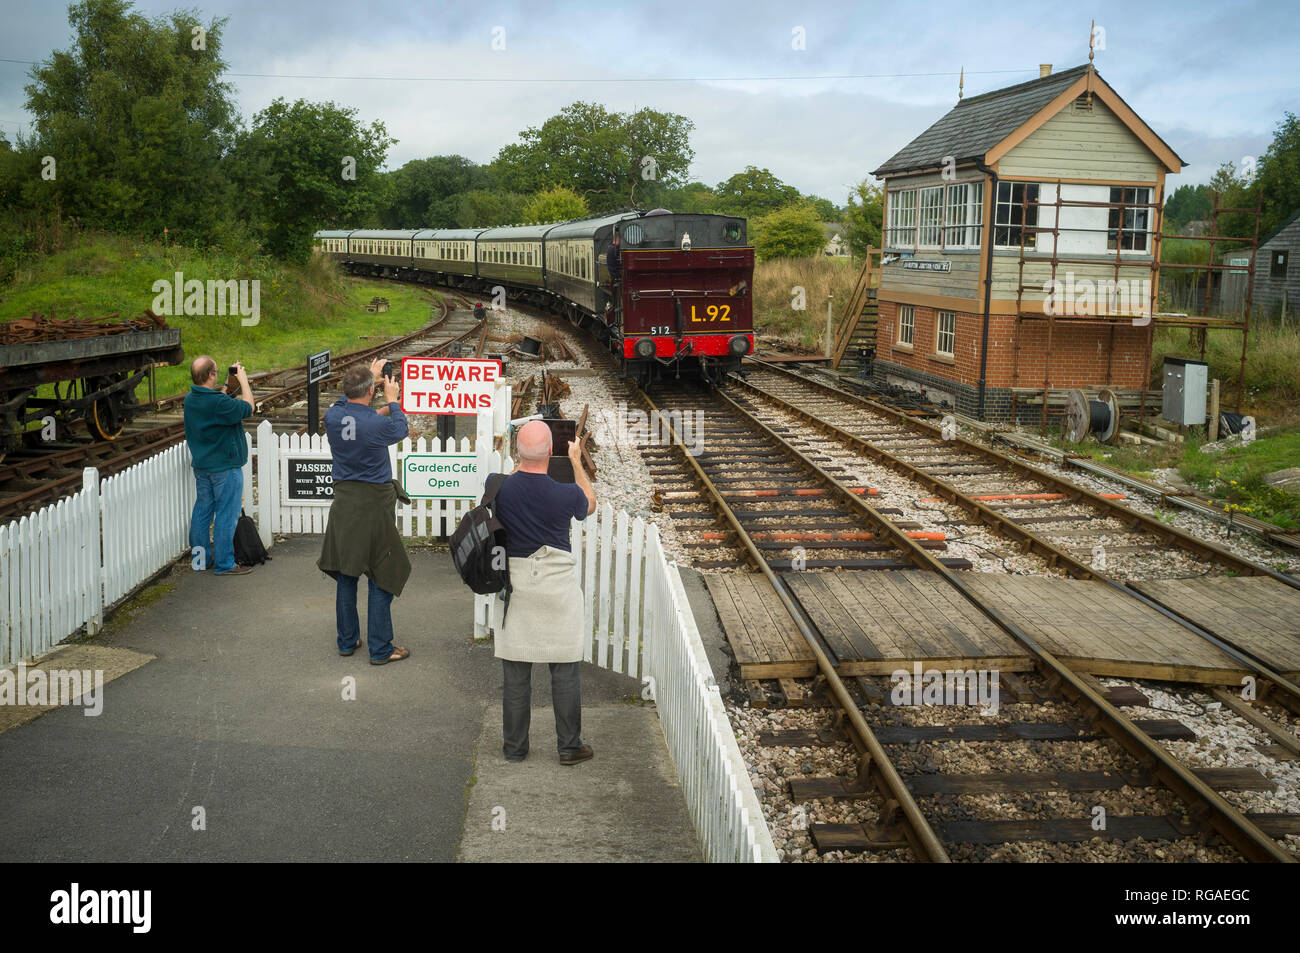 Train enthusiasts photograph a steam train of the South Devon Railway as it arrives at Ashburton Junction near Totnes, Devon - Stock Image